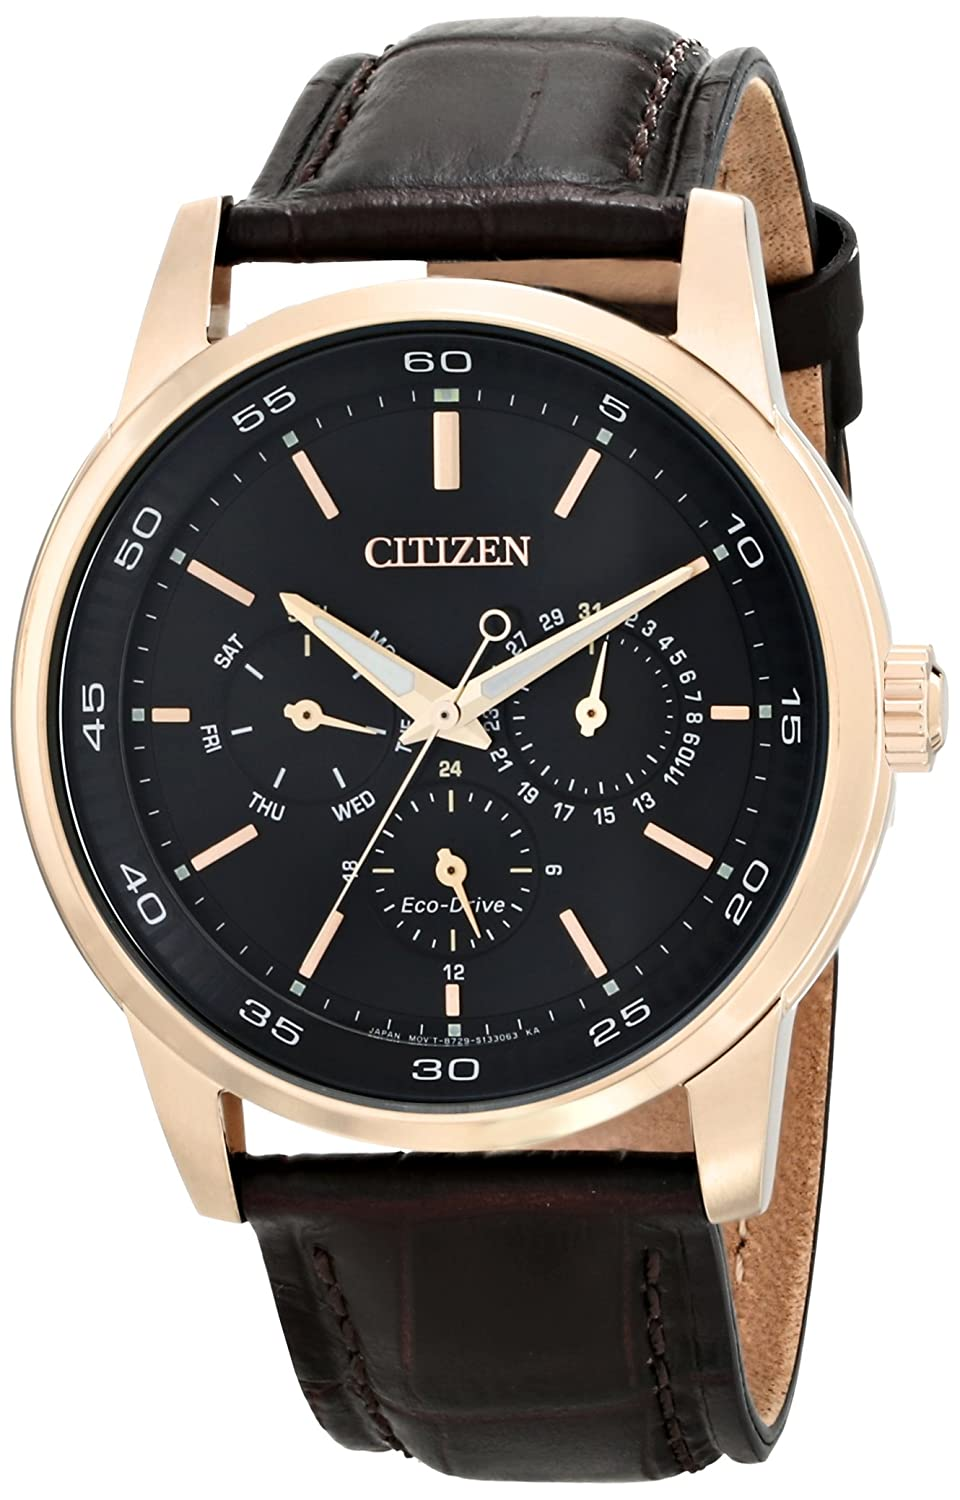 acbdbde42 Amazon.com: Citizen Men's Eco-Drive Stainless Steel Watch with Day/Date,  BU2013-08E: Watches